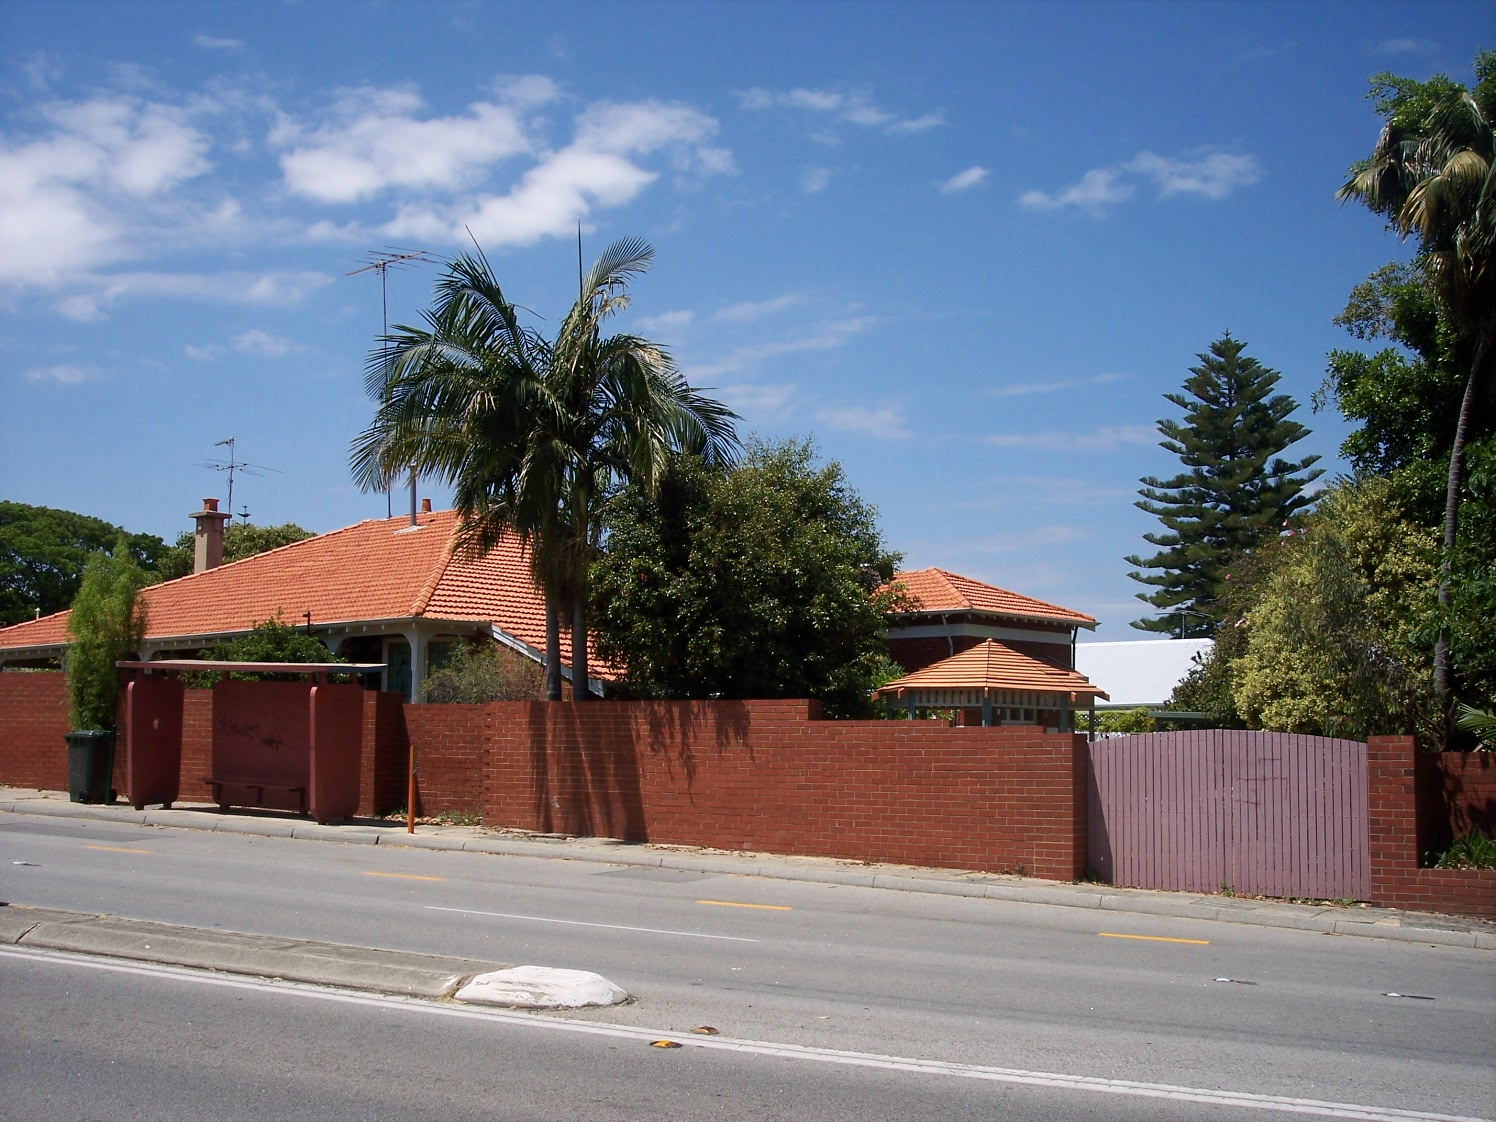 31-10-06 View SE 205 Canning Highway.jpg